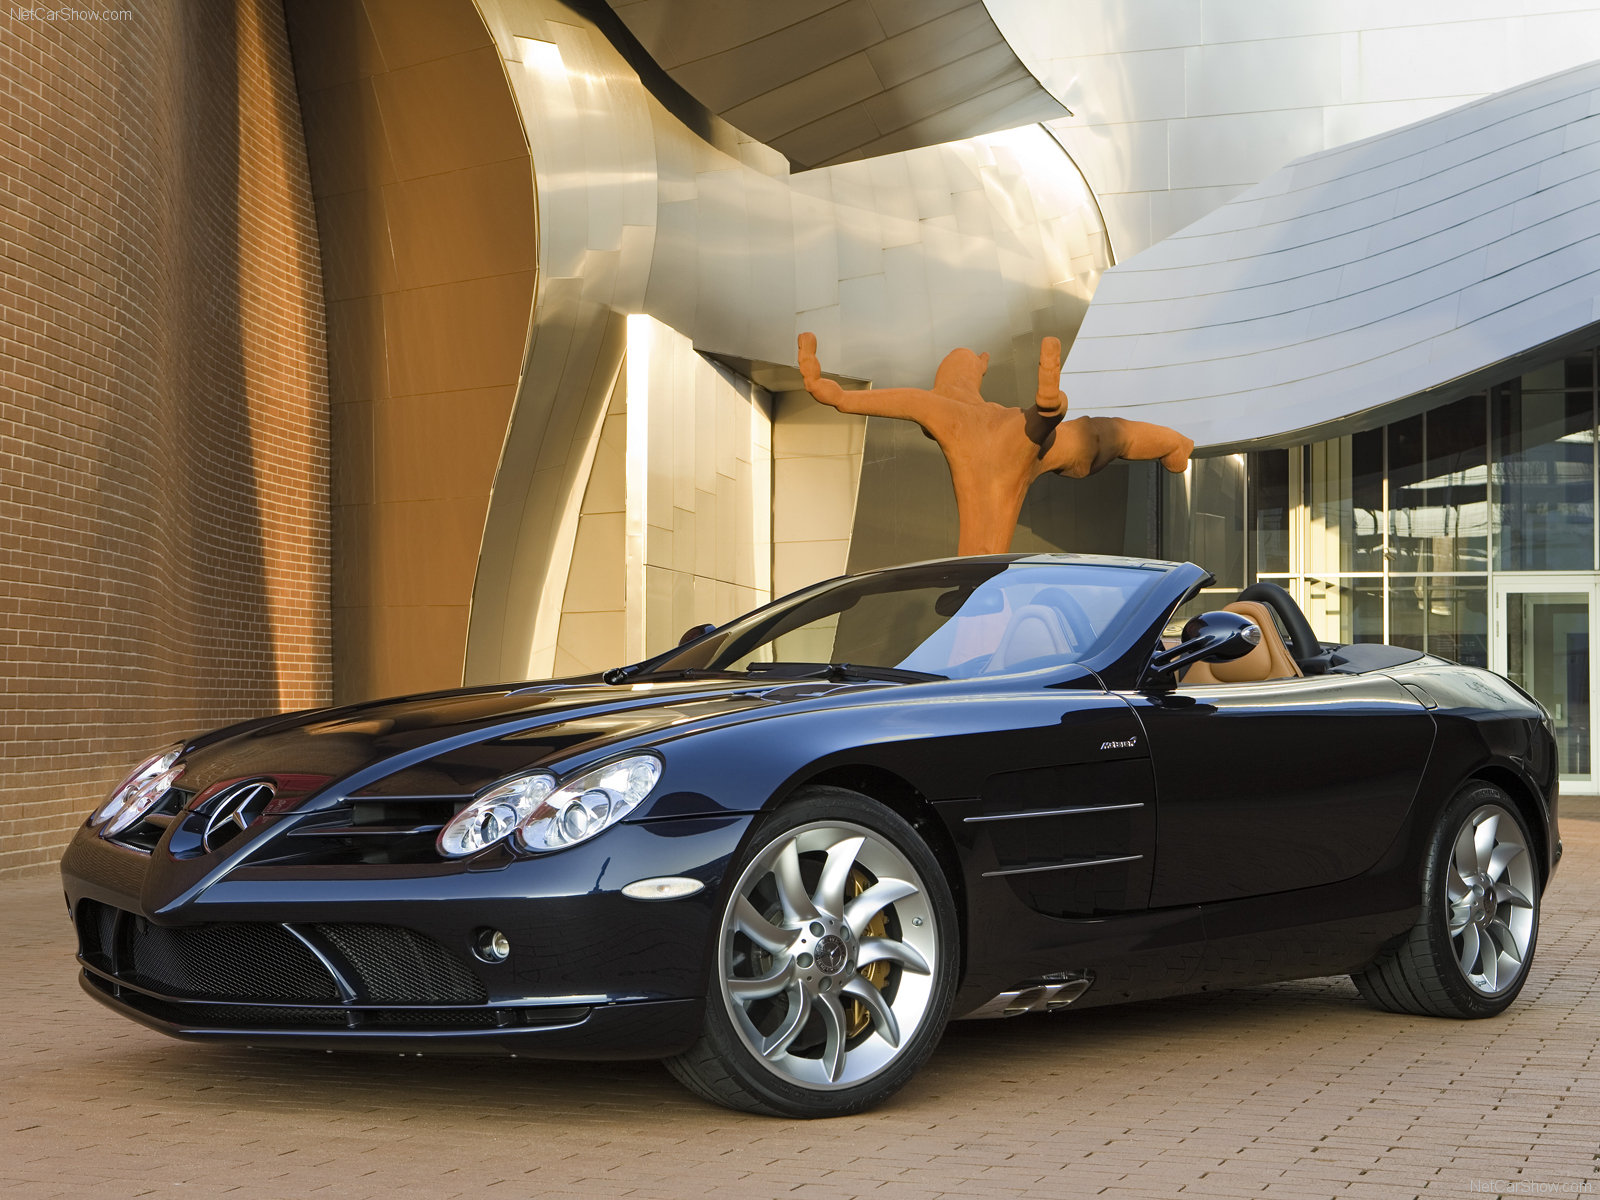 Mercedes Benz Slr Mclaren Roadster Photos Photogallery HD Wallpapers Download free images and photos [musssic.tk]